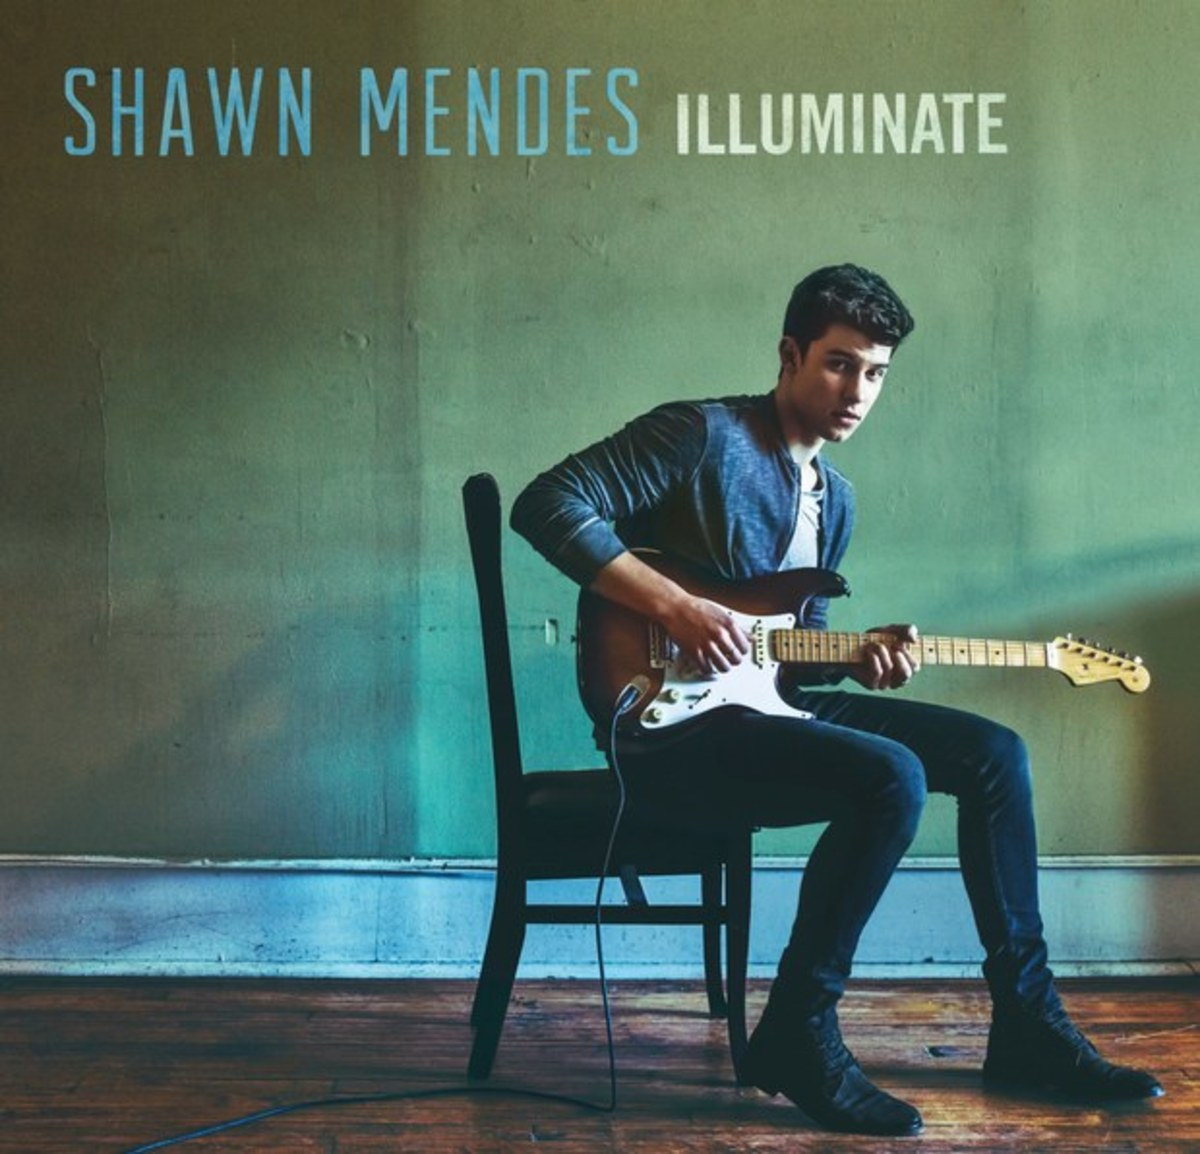 Shawn Mendes' 2nd Album 'Illuminate'